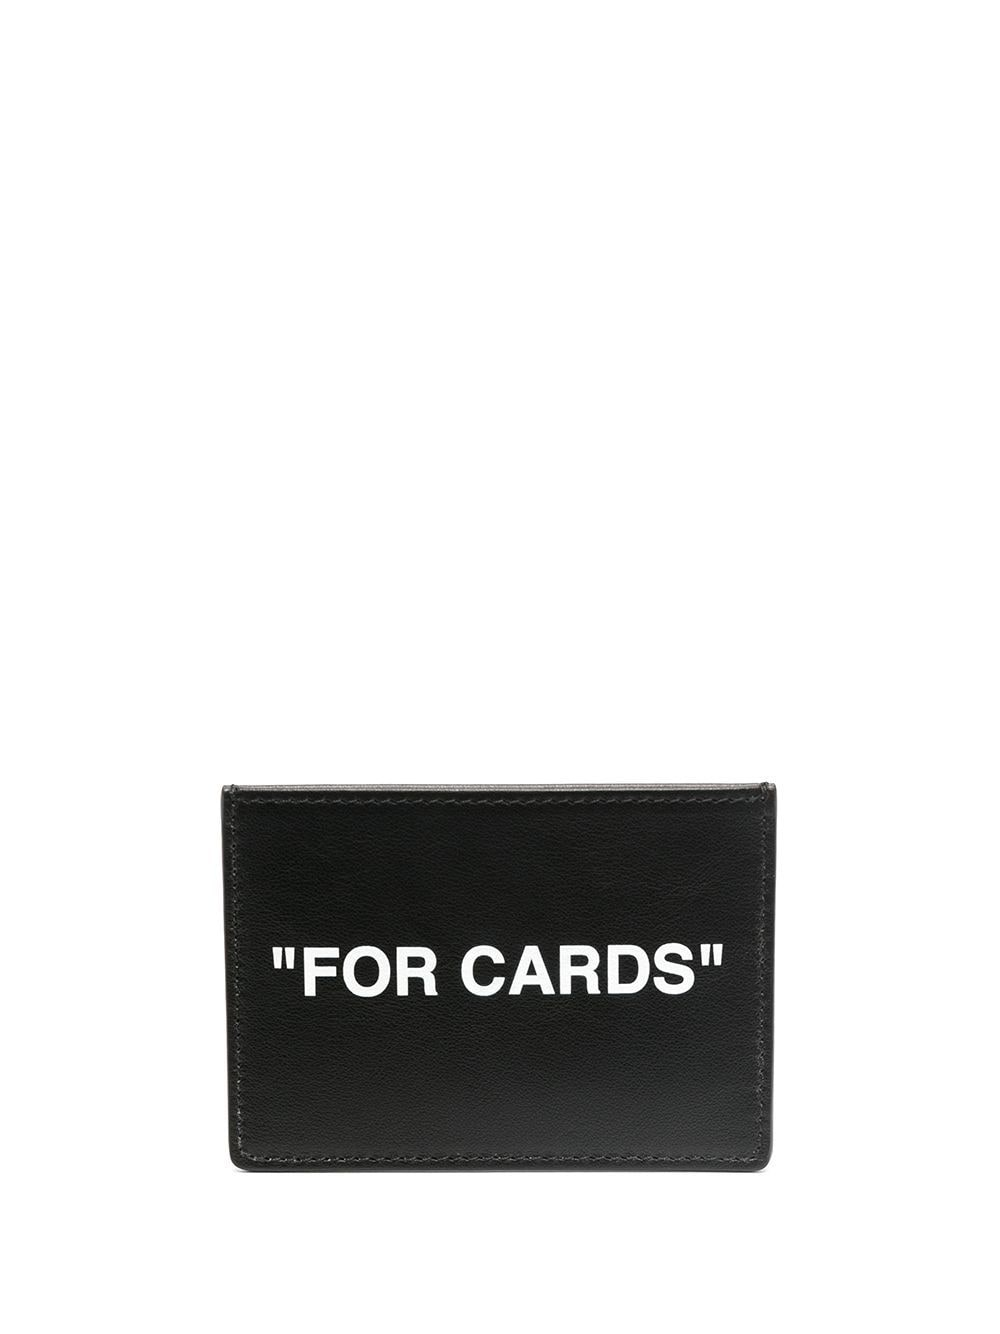 OFF-WHITE CALF SKIN QUOTE CARDHOLDER